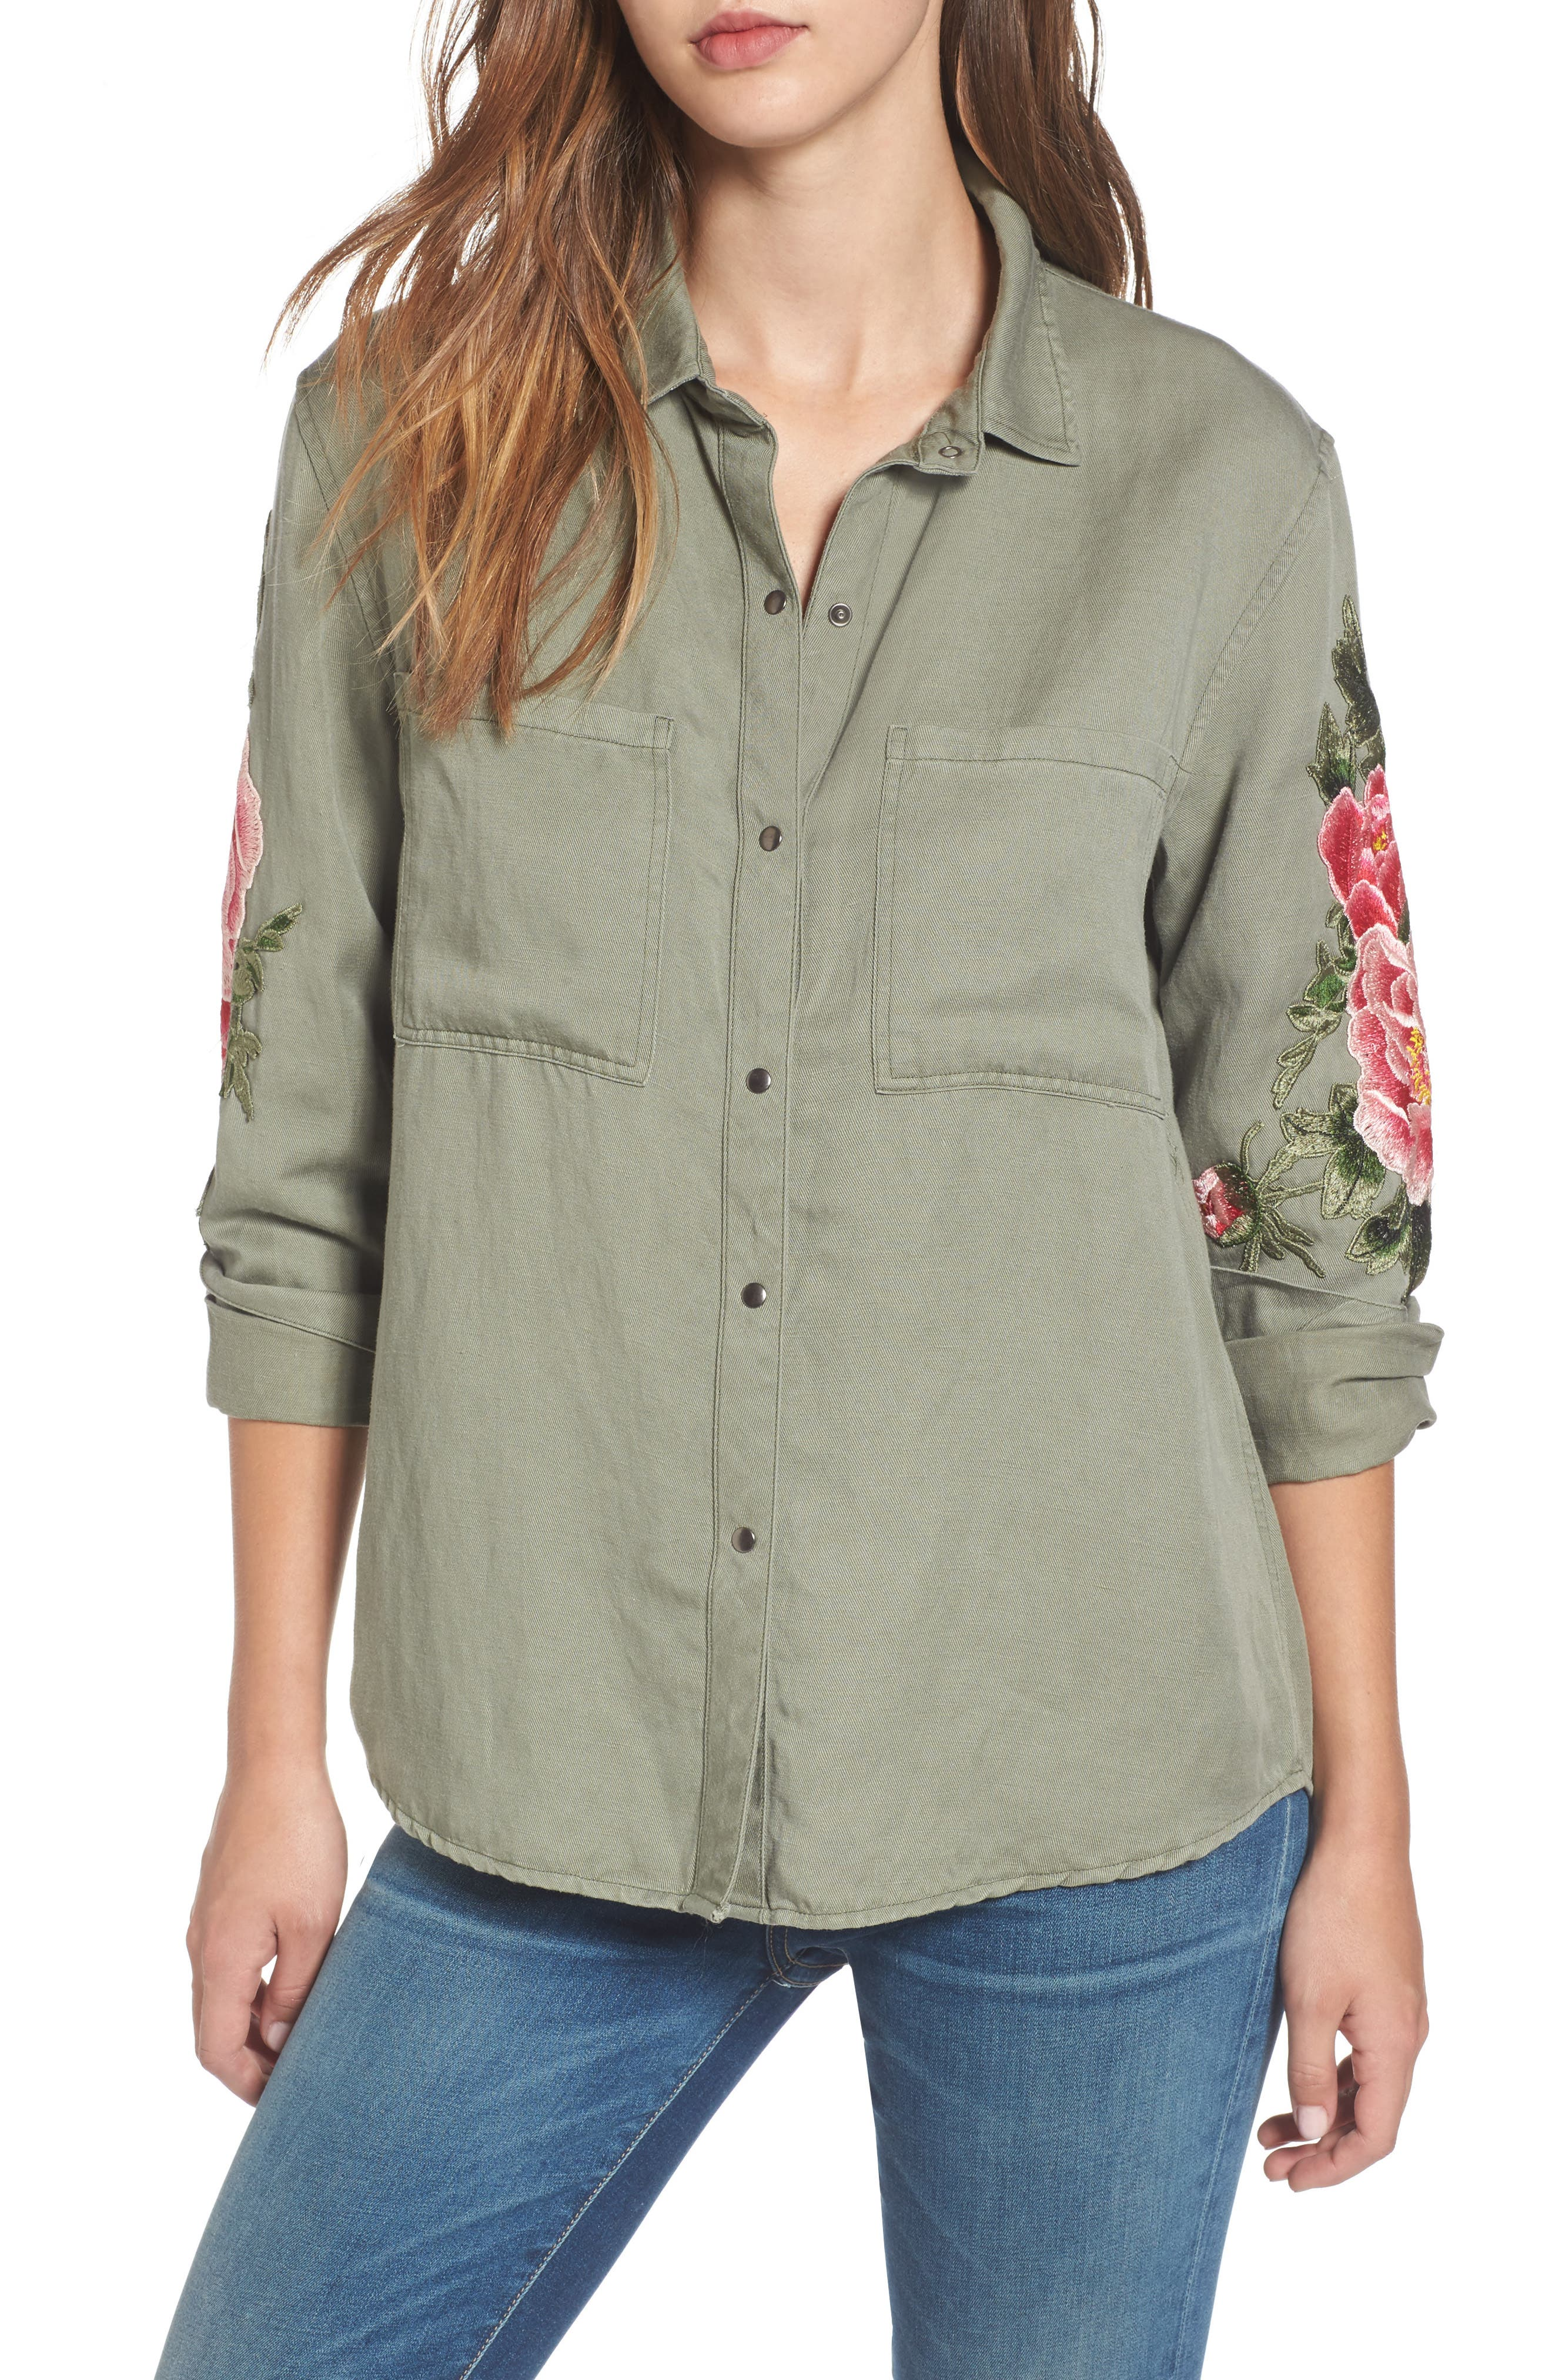 Marcel Embroidered Shirt,                         Main,                         color, Sage/ Pink Floral Patches